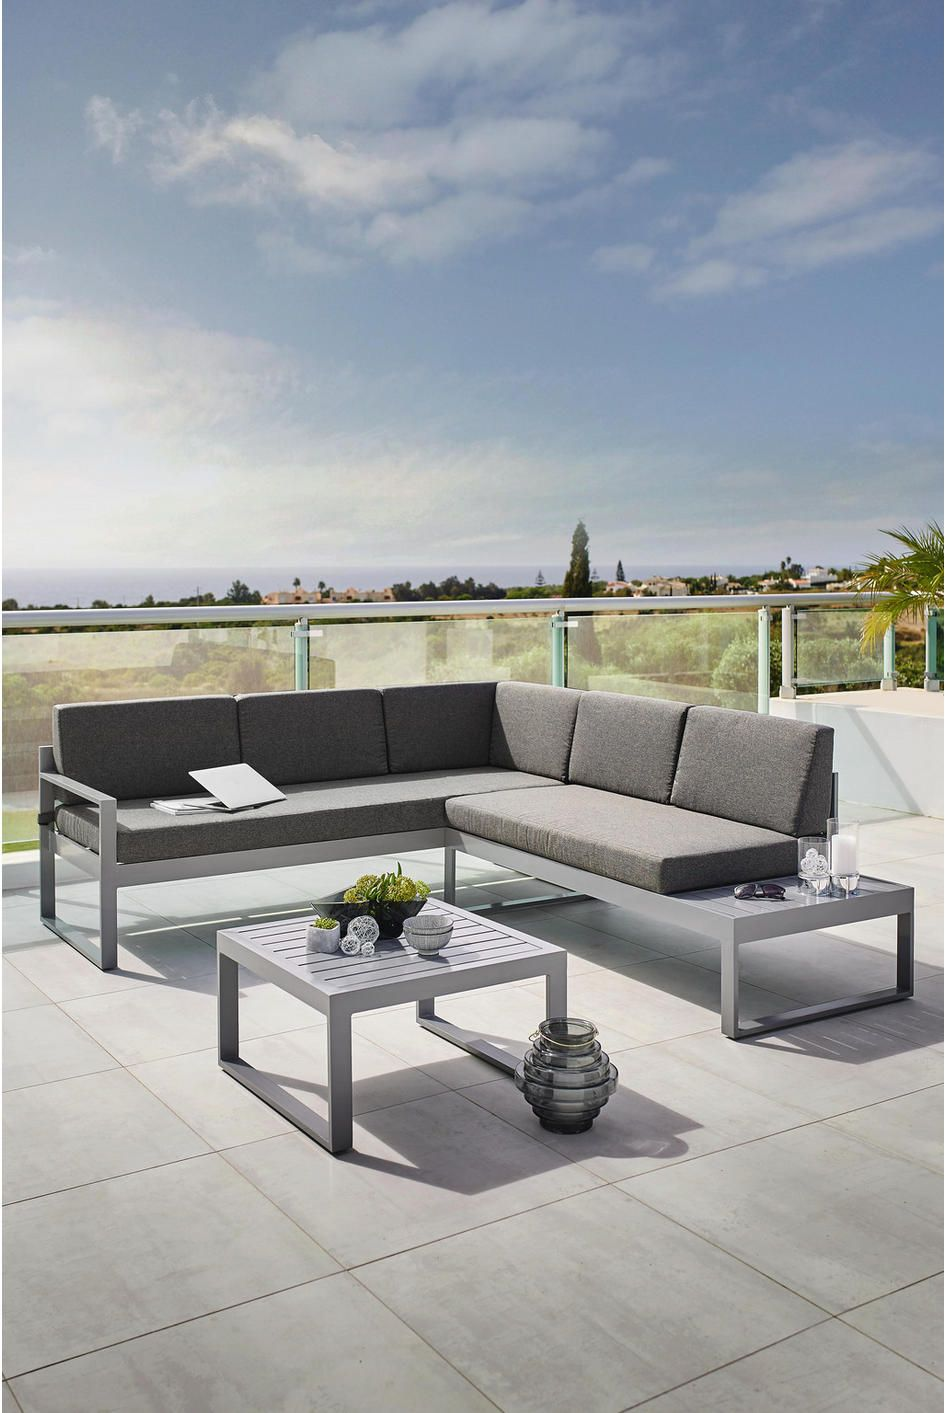 LOUNGEGARNITUR 192/219 cm | Outdoor dekorationen, Lounge ...